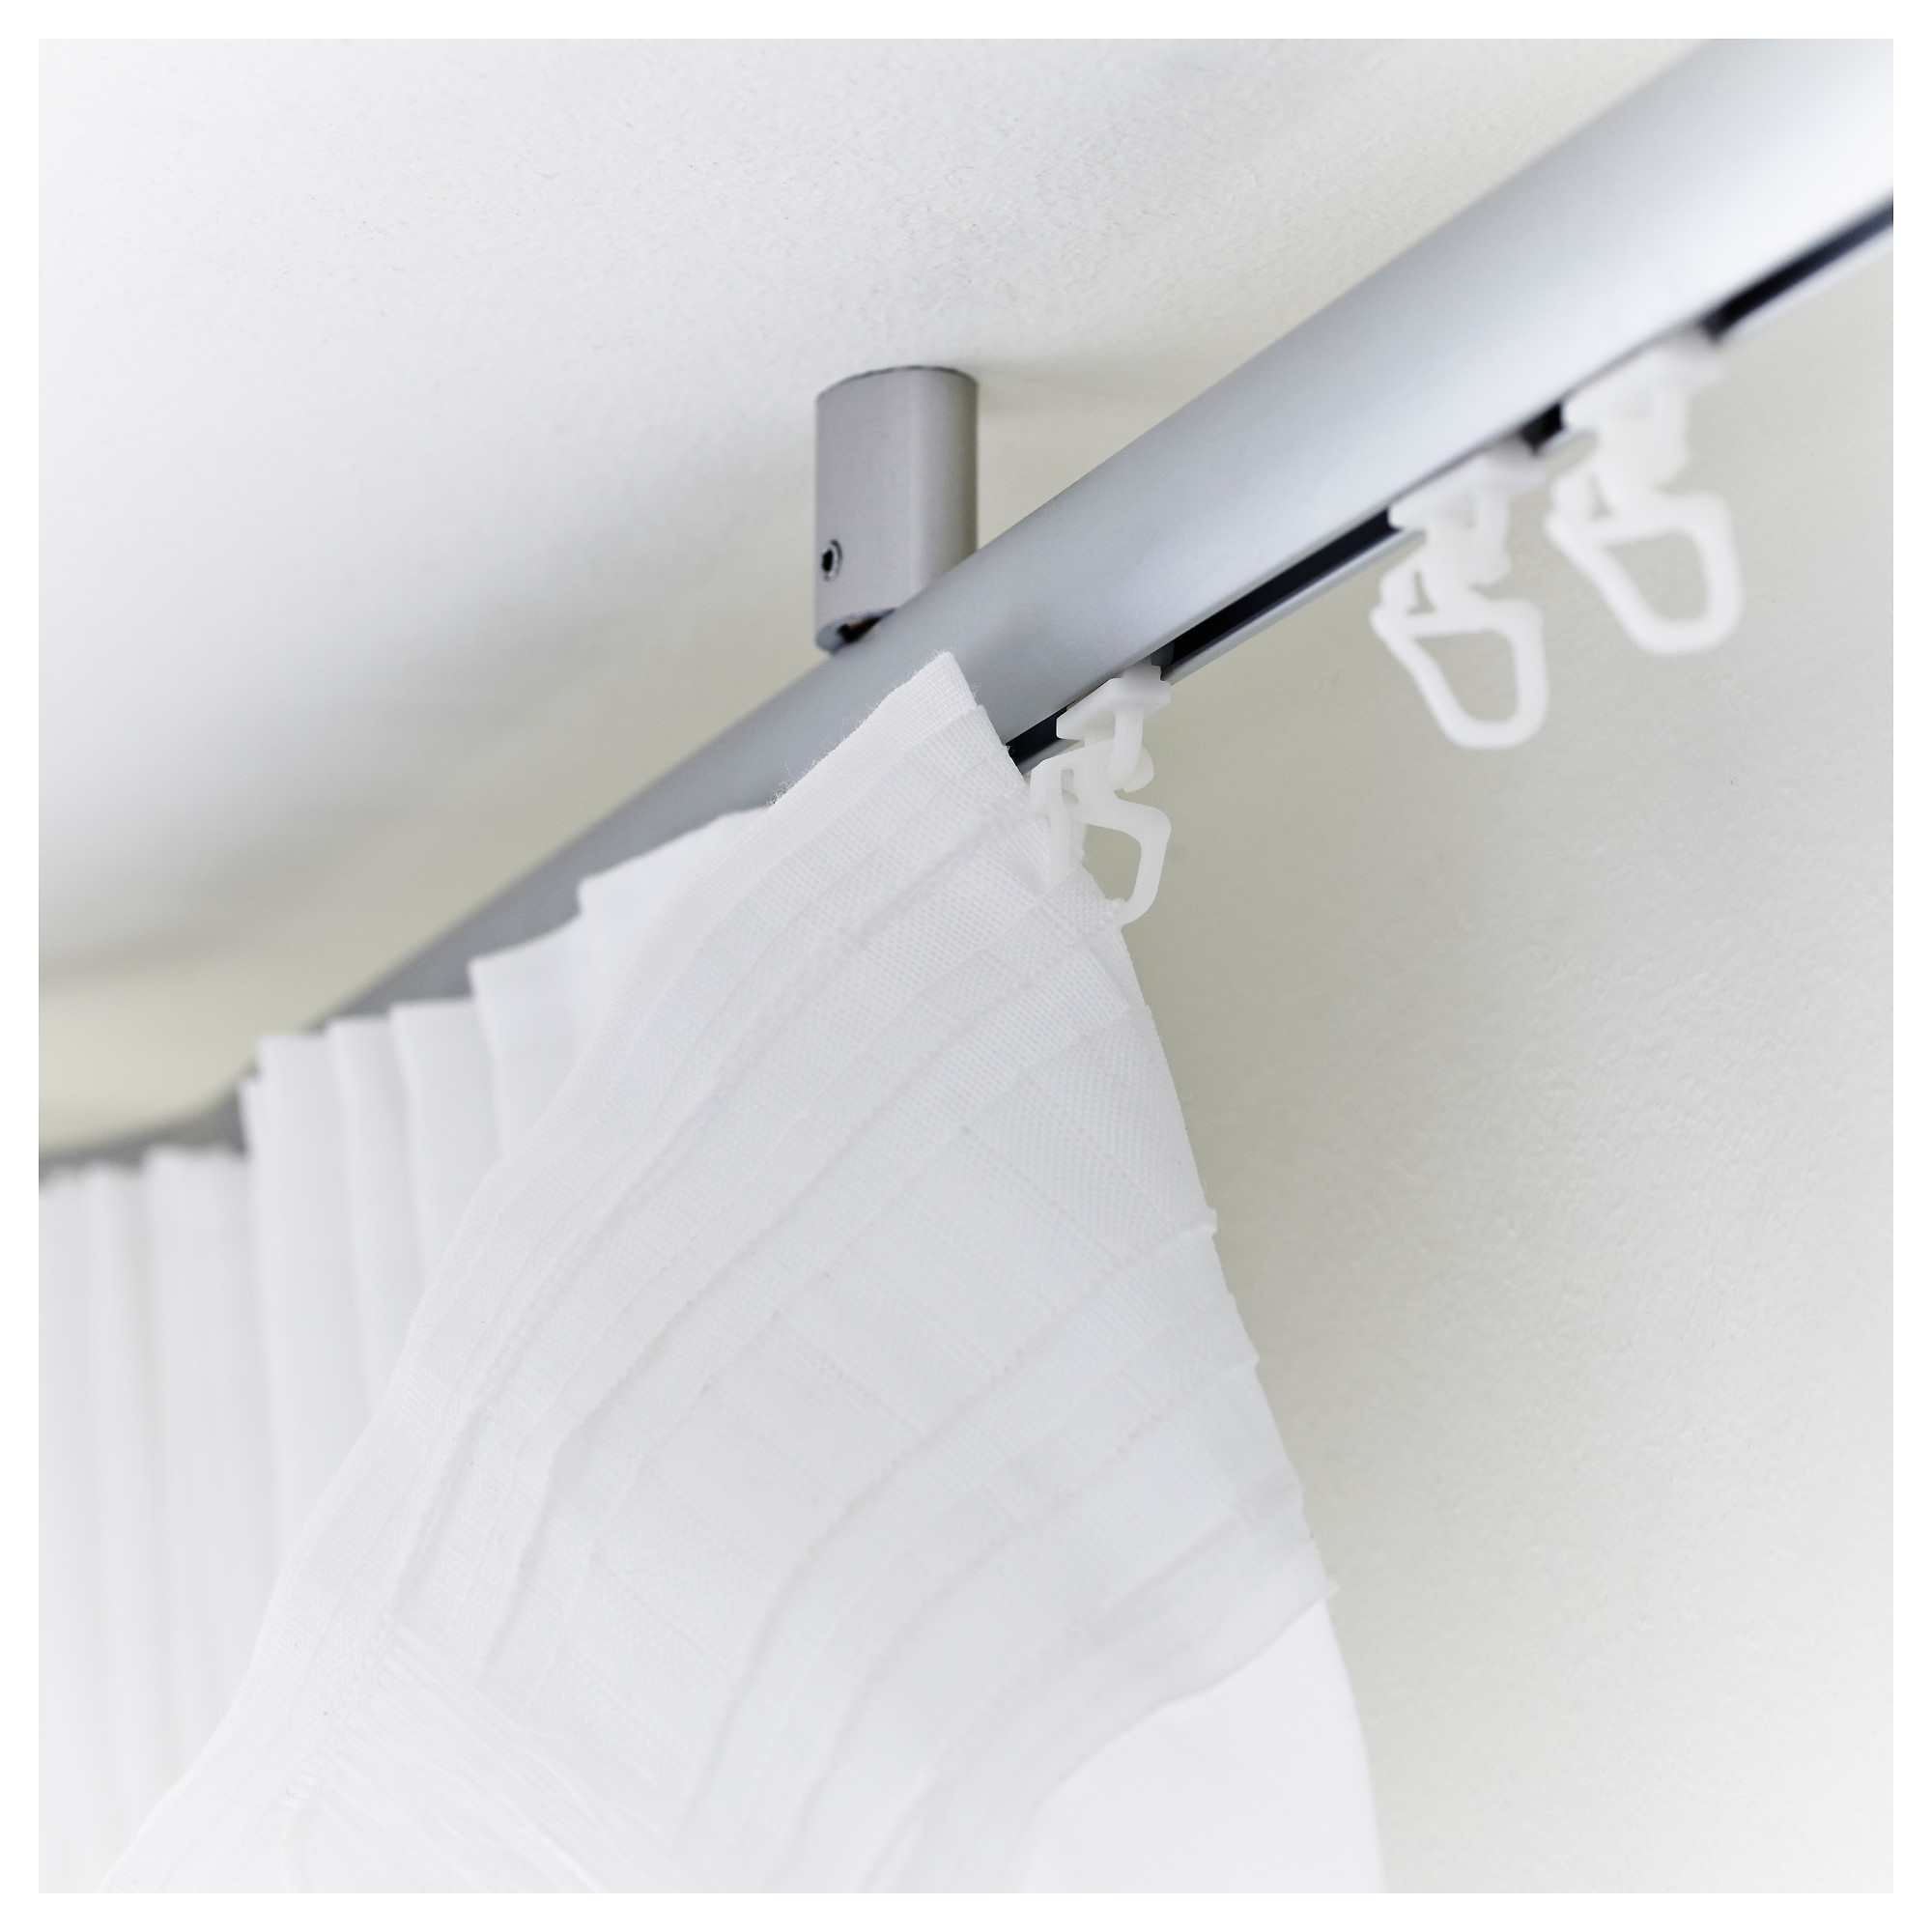 Inspiring ikea curtain rods for home decor ideas with ikea double curtain rod and ceiling curtain rods ikea